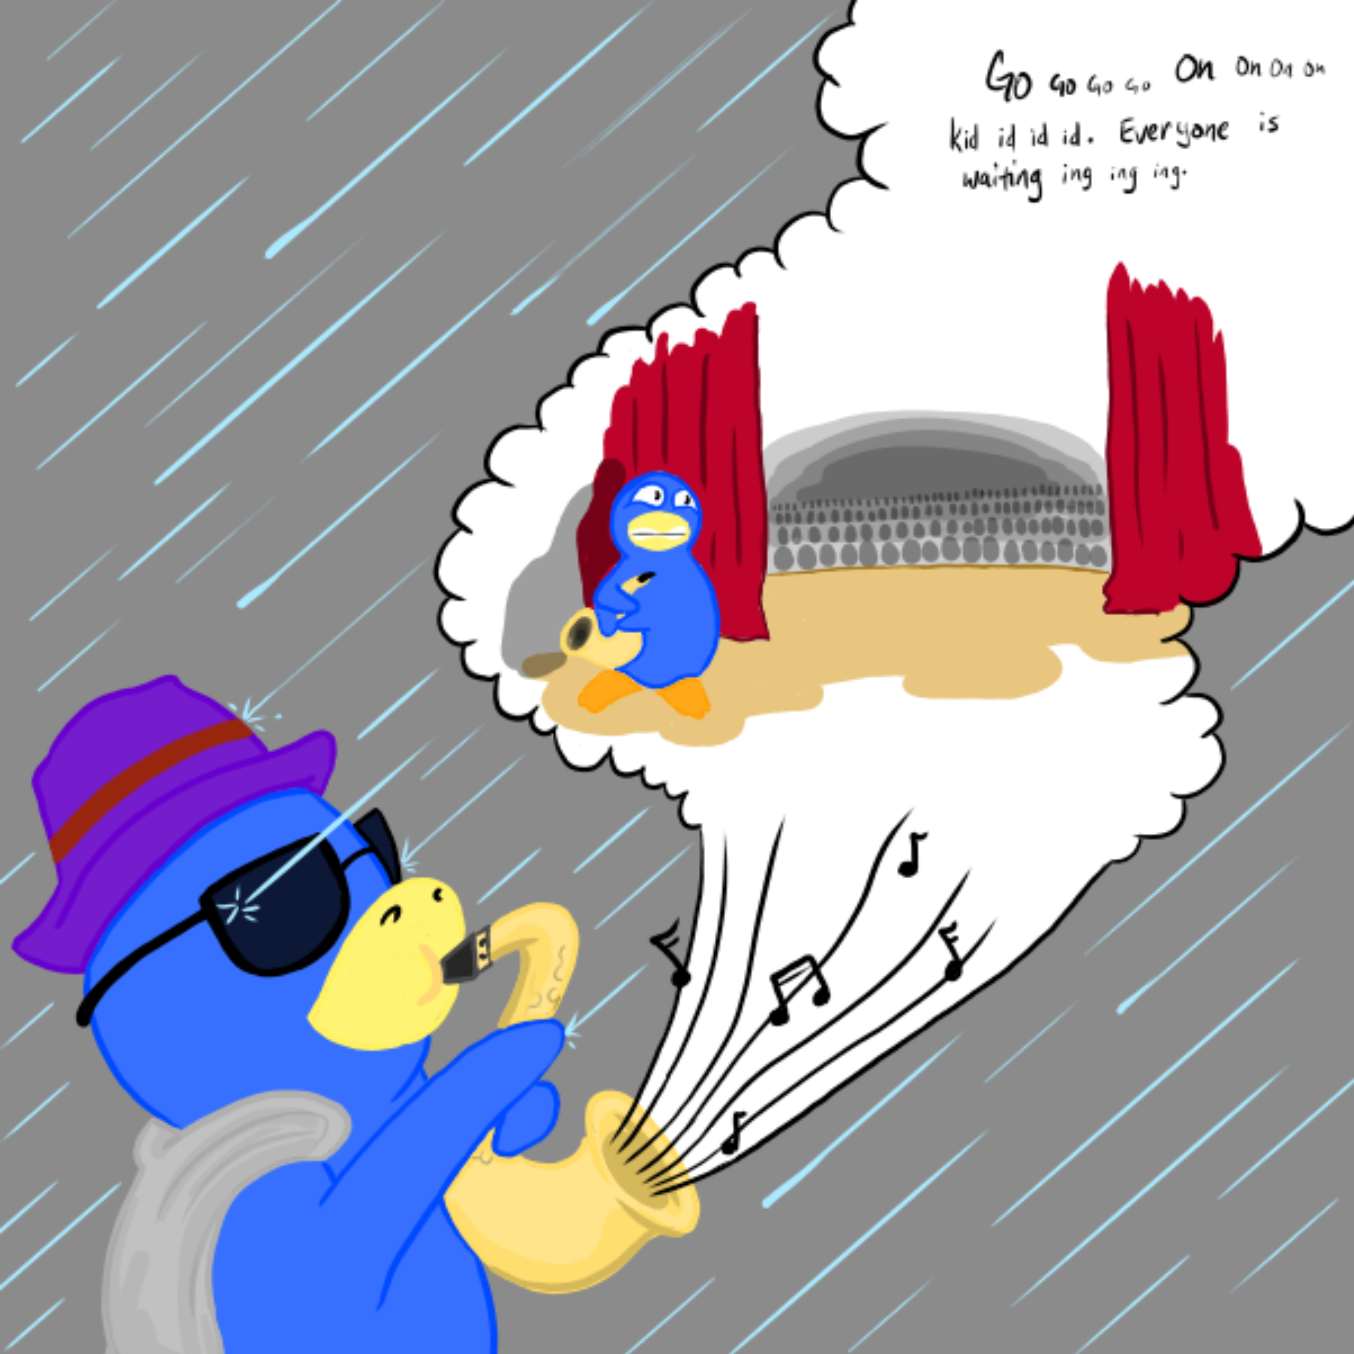 Drawing in Lets Jam by WizardCroissant